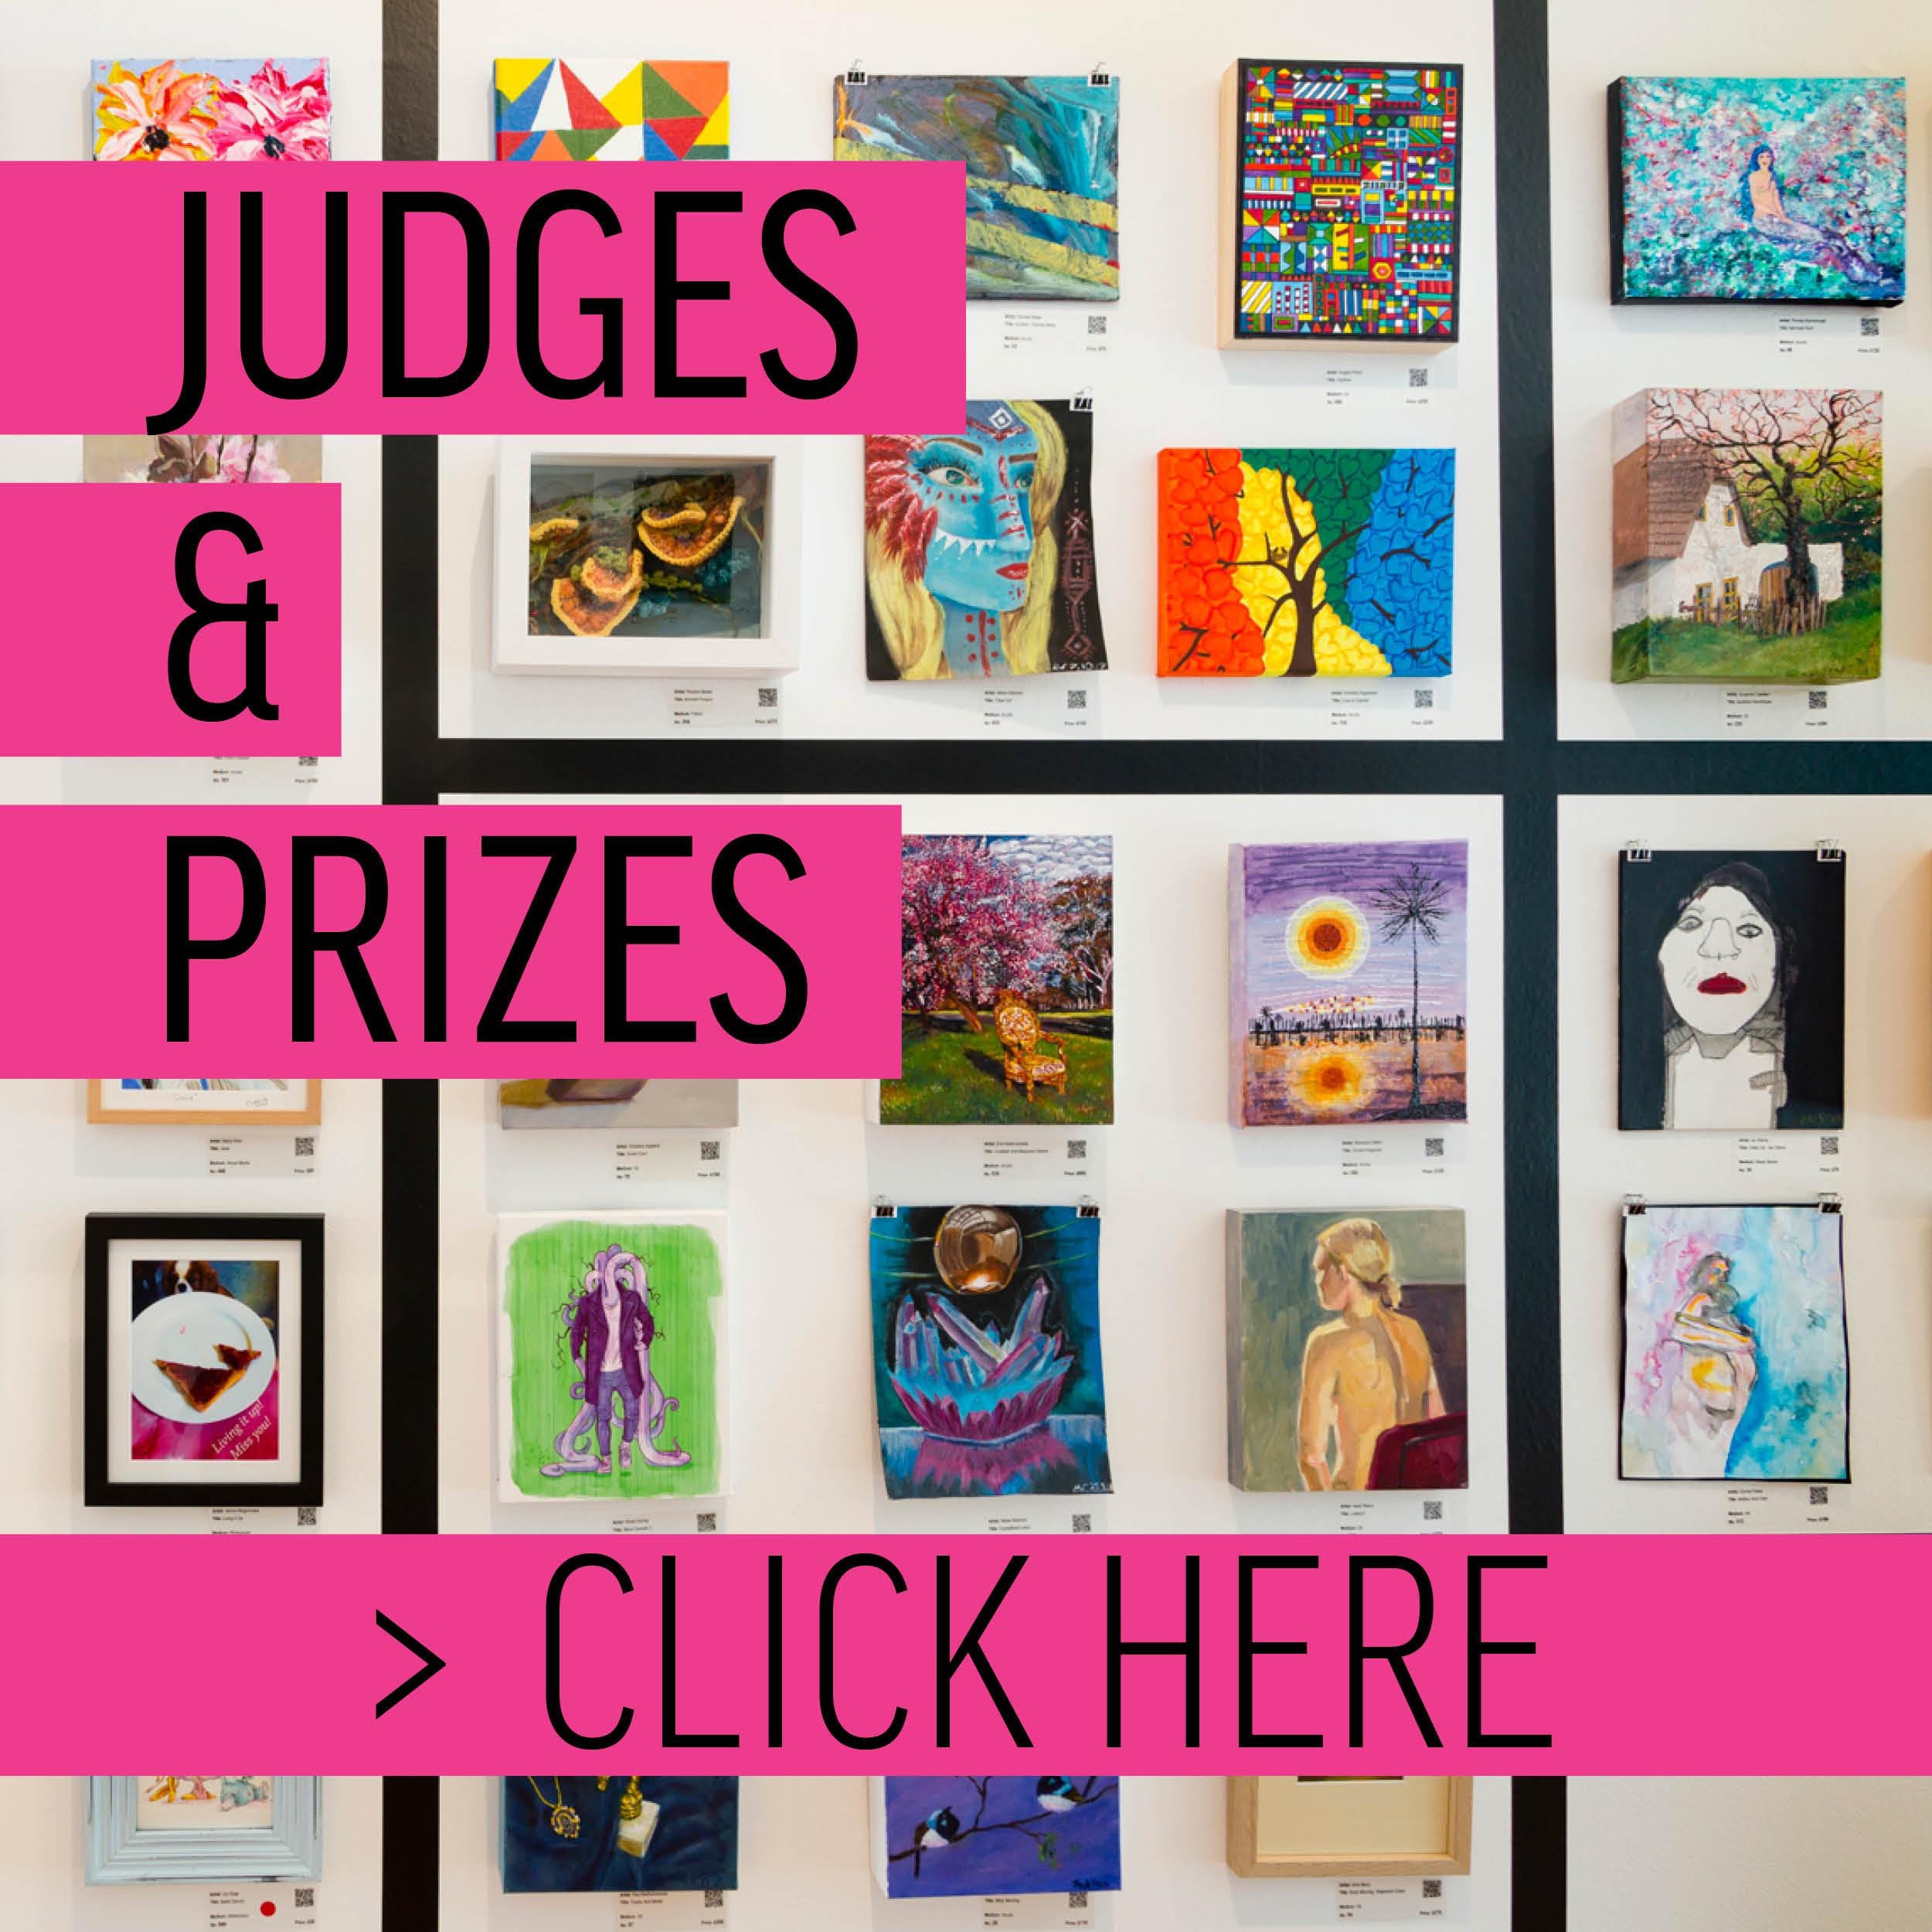 Judges & Pizes